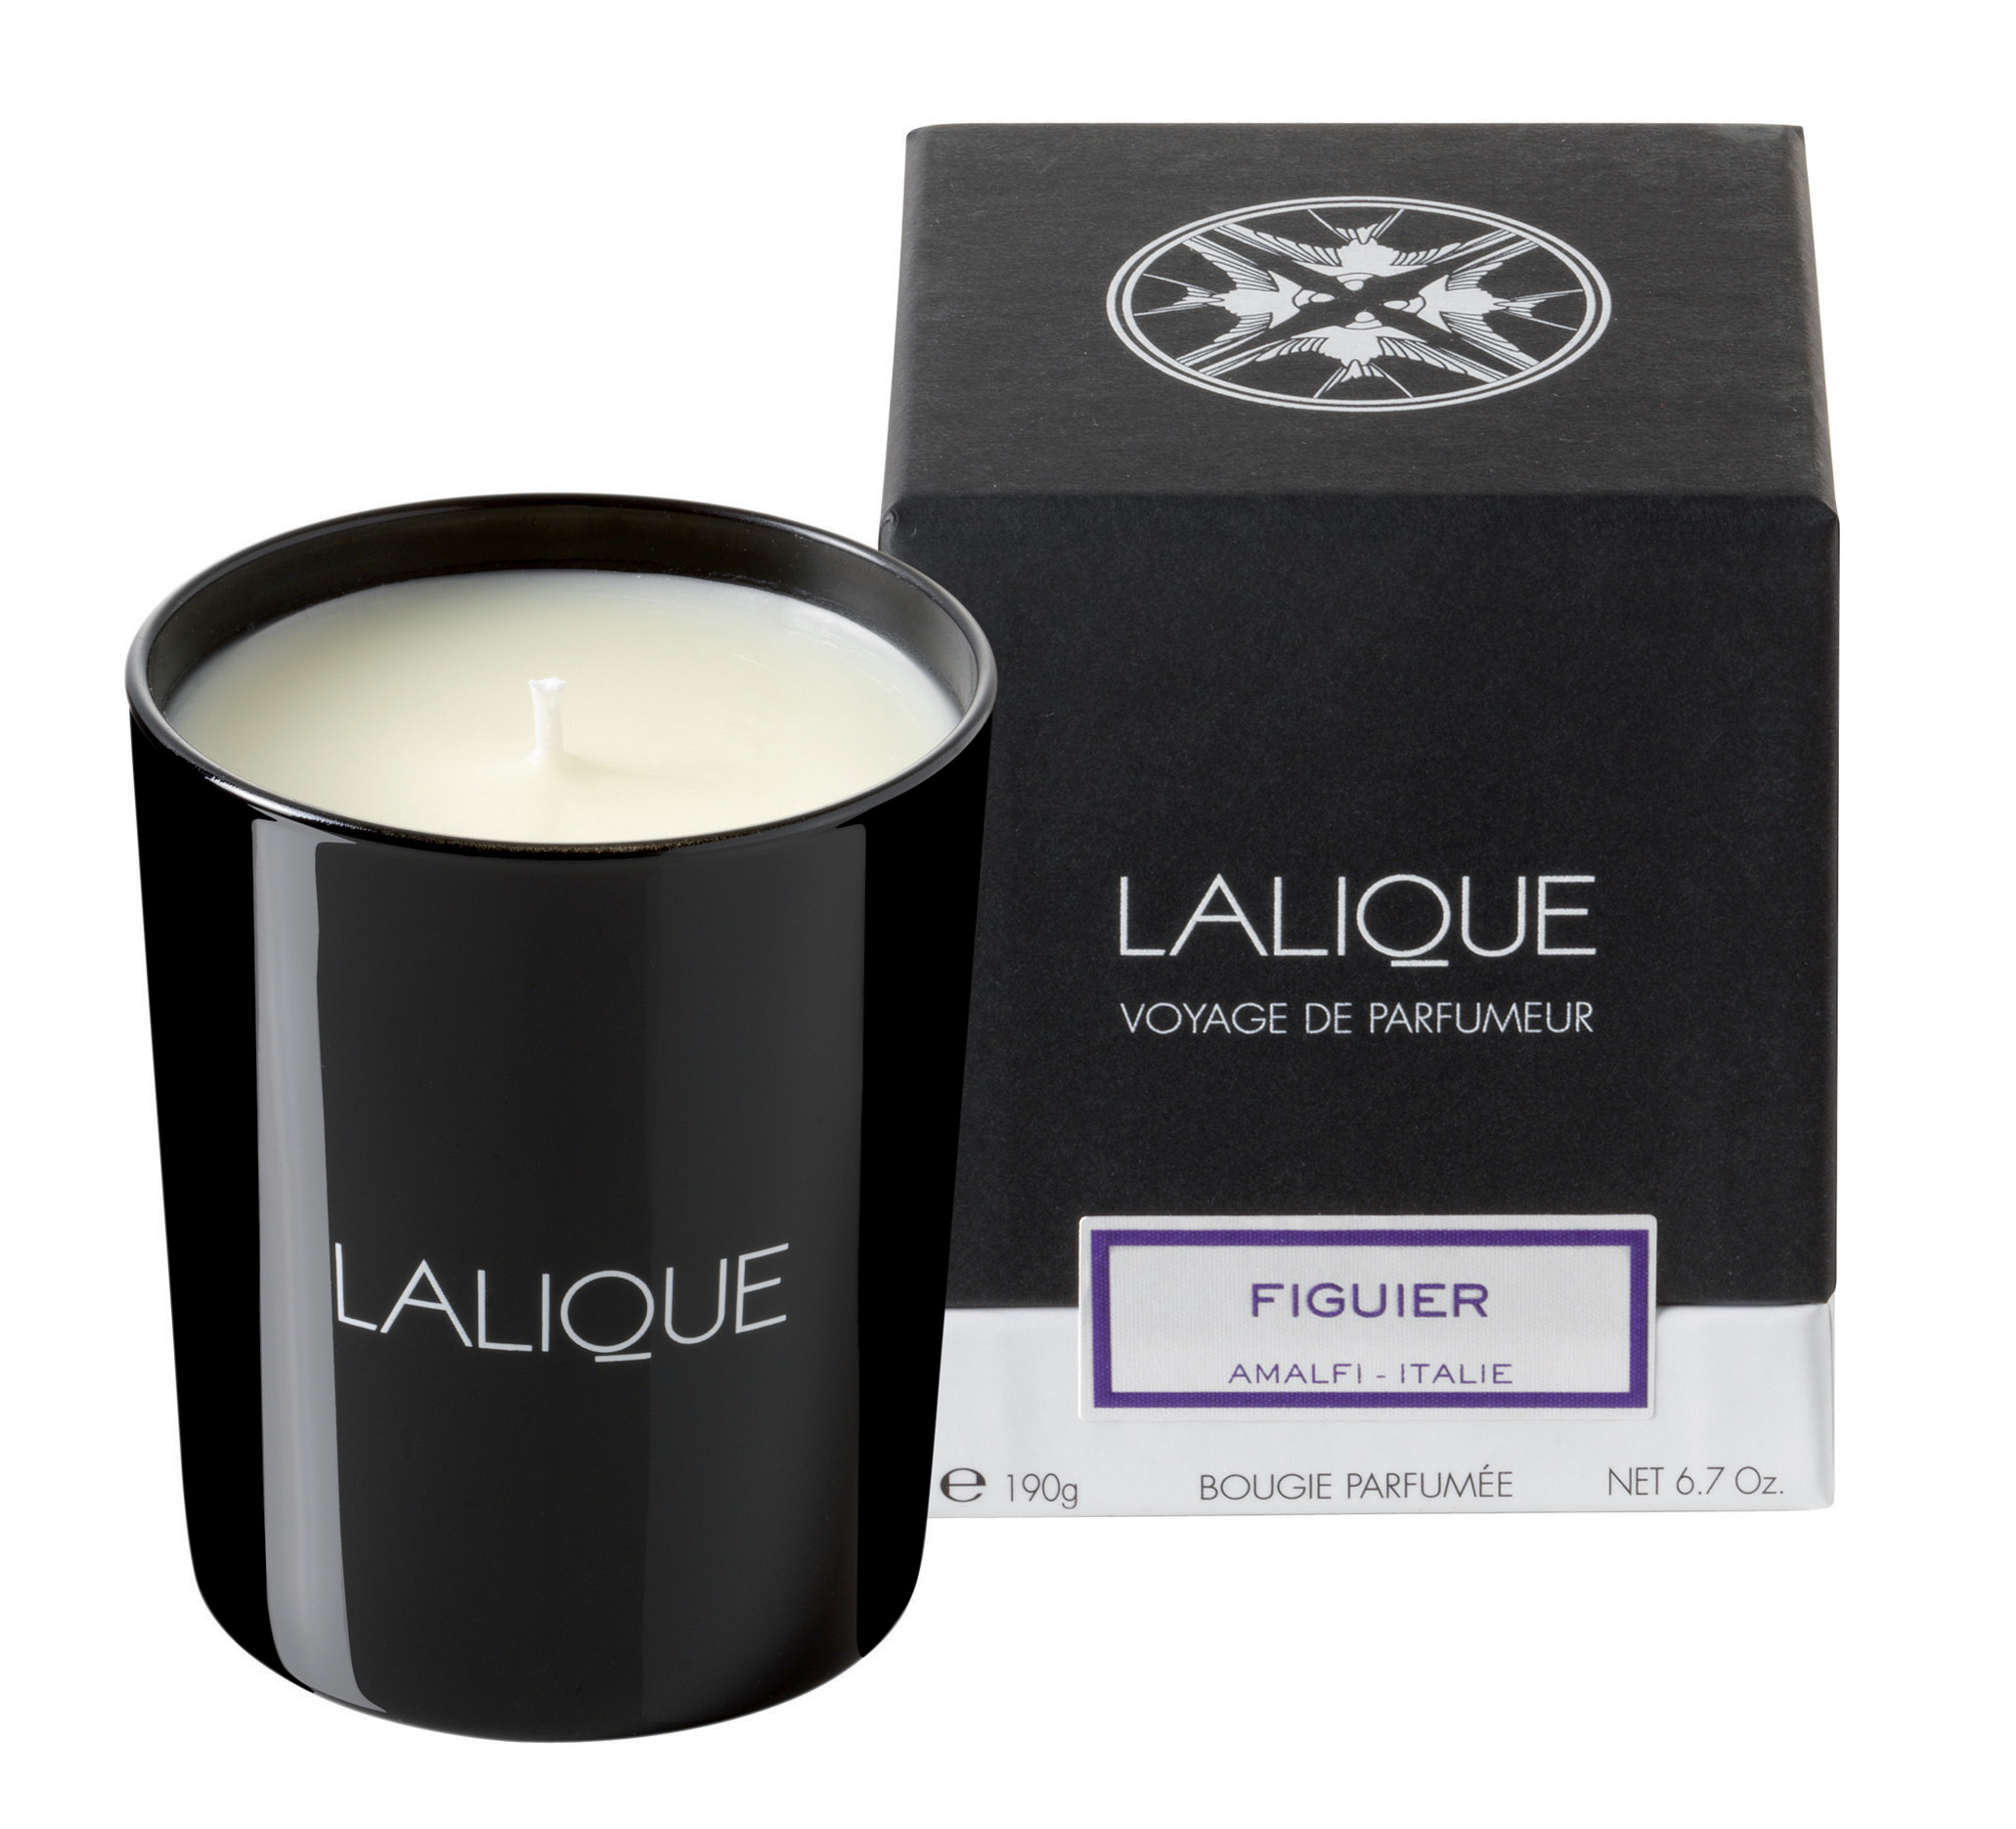 Lalique Amalfi Figuier Scented Candle 190g